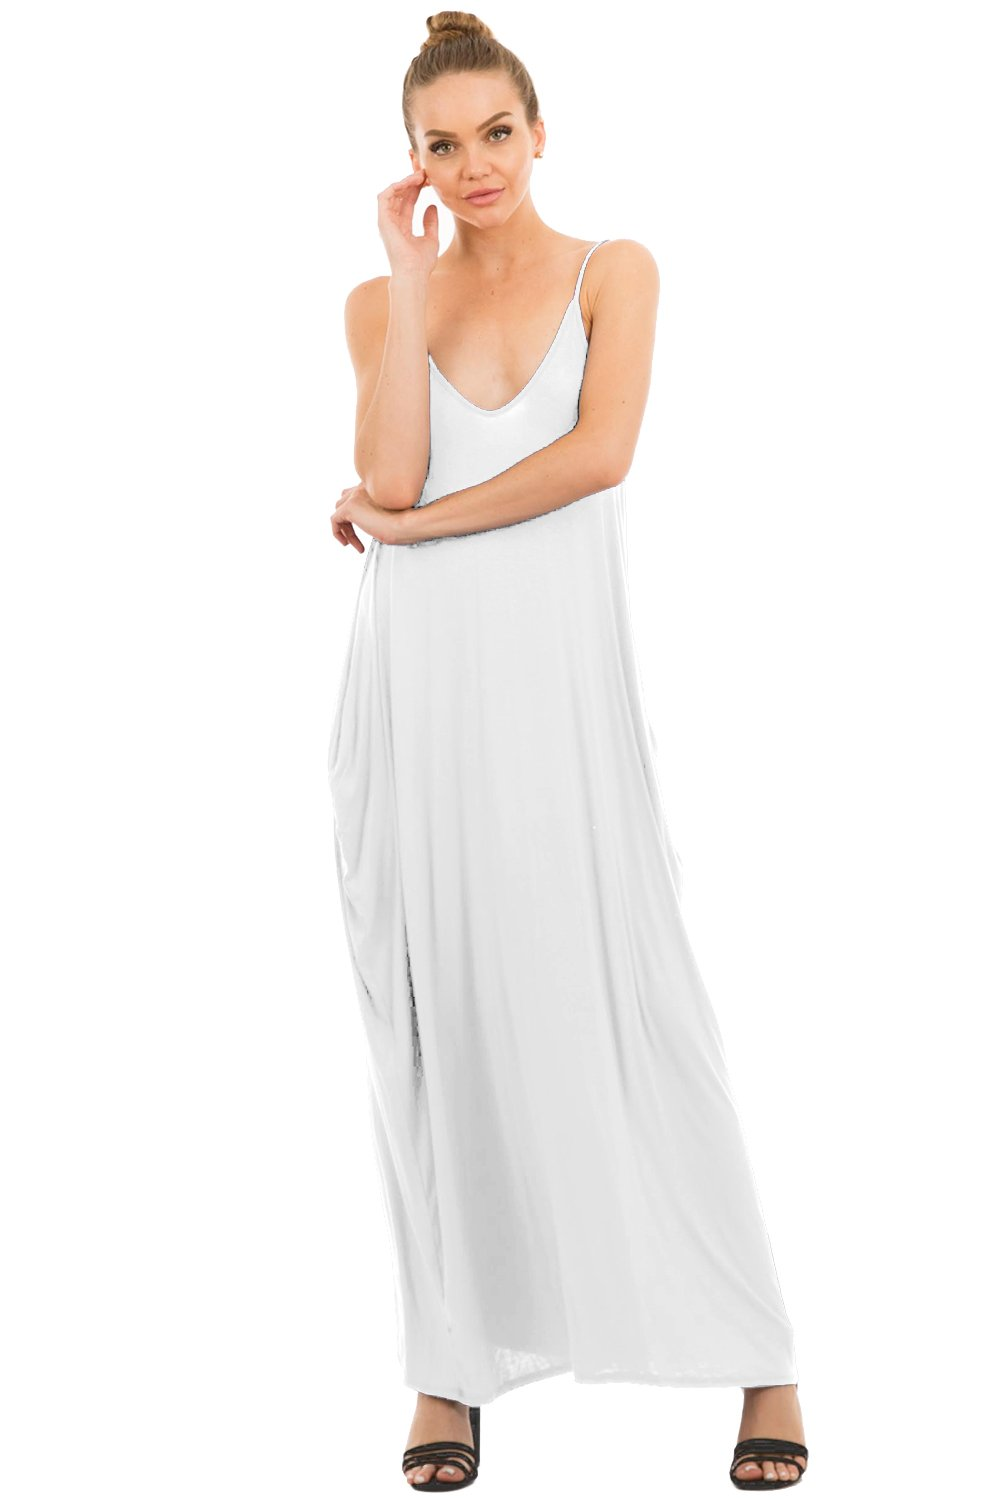 Love In D5883 Full-Length Harem Spaghetti Strap Maxi Dress with Pockets White S